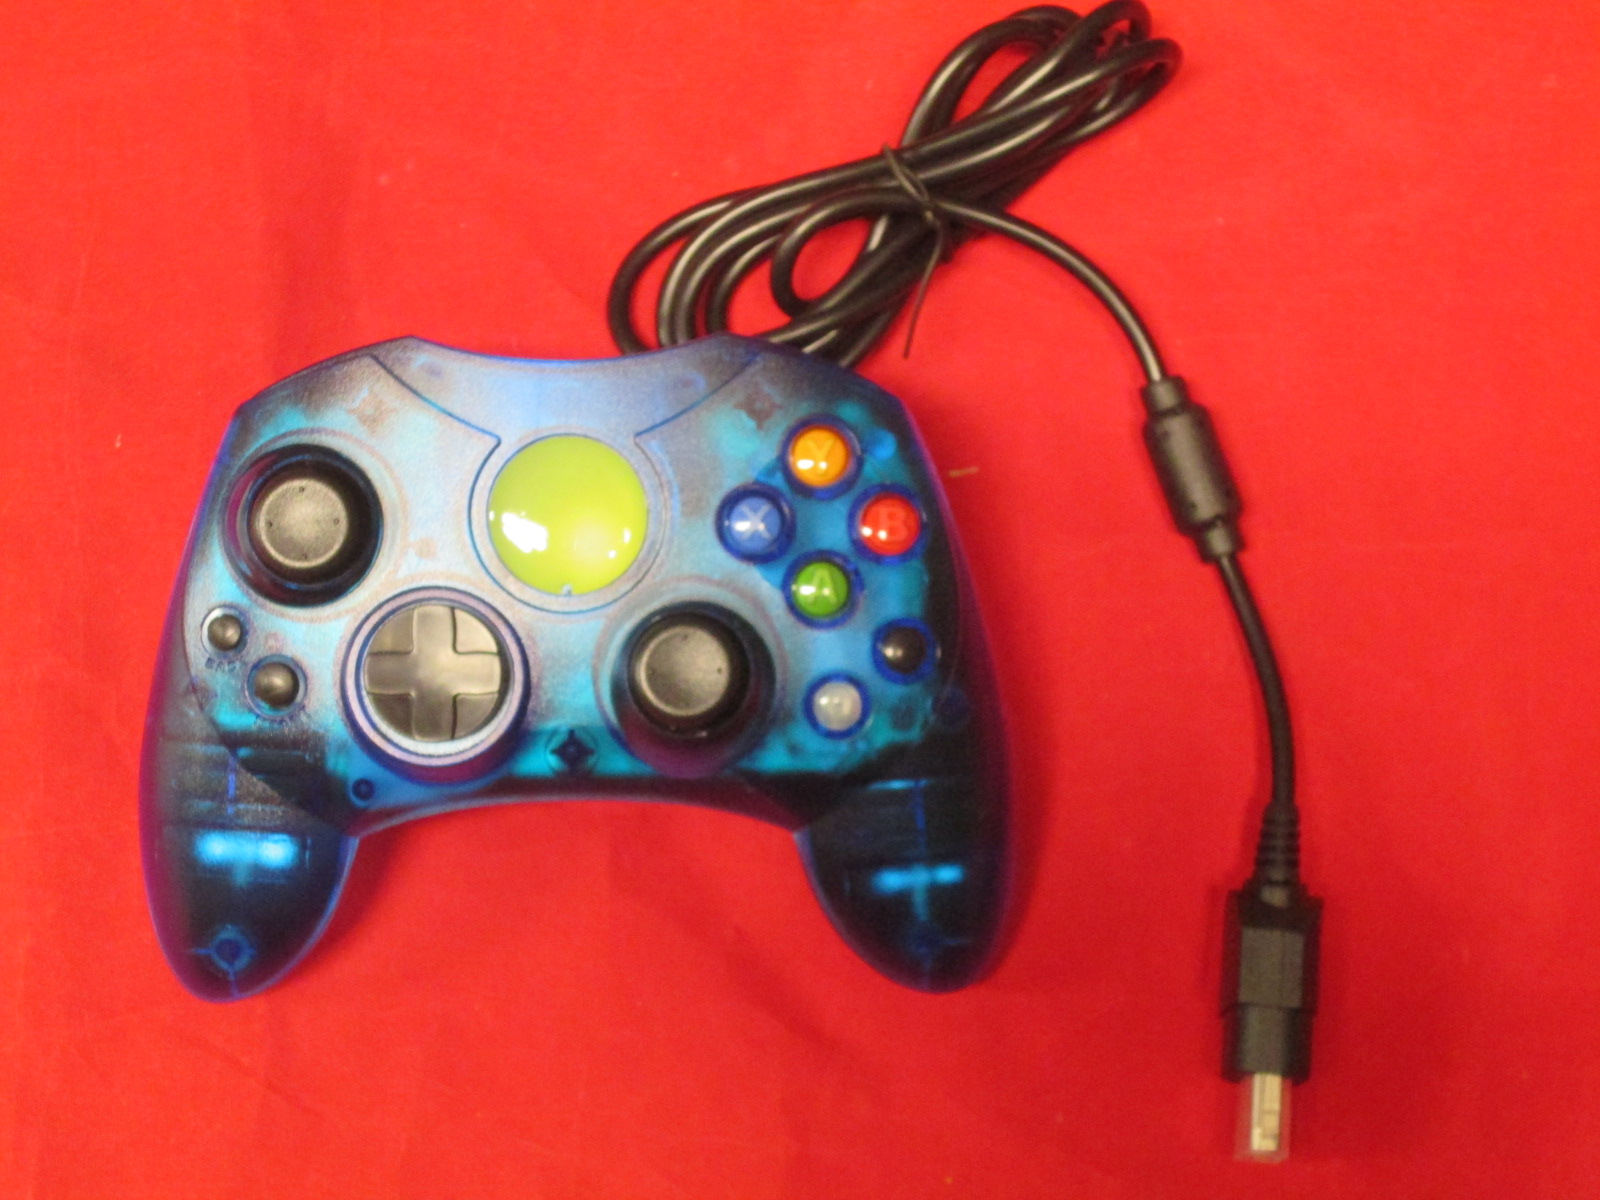 Replacement Controller For Xbox Original Blue Transparent By Mars